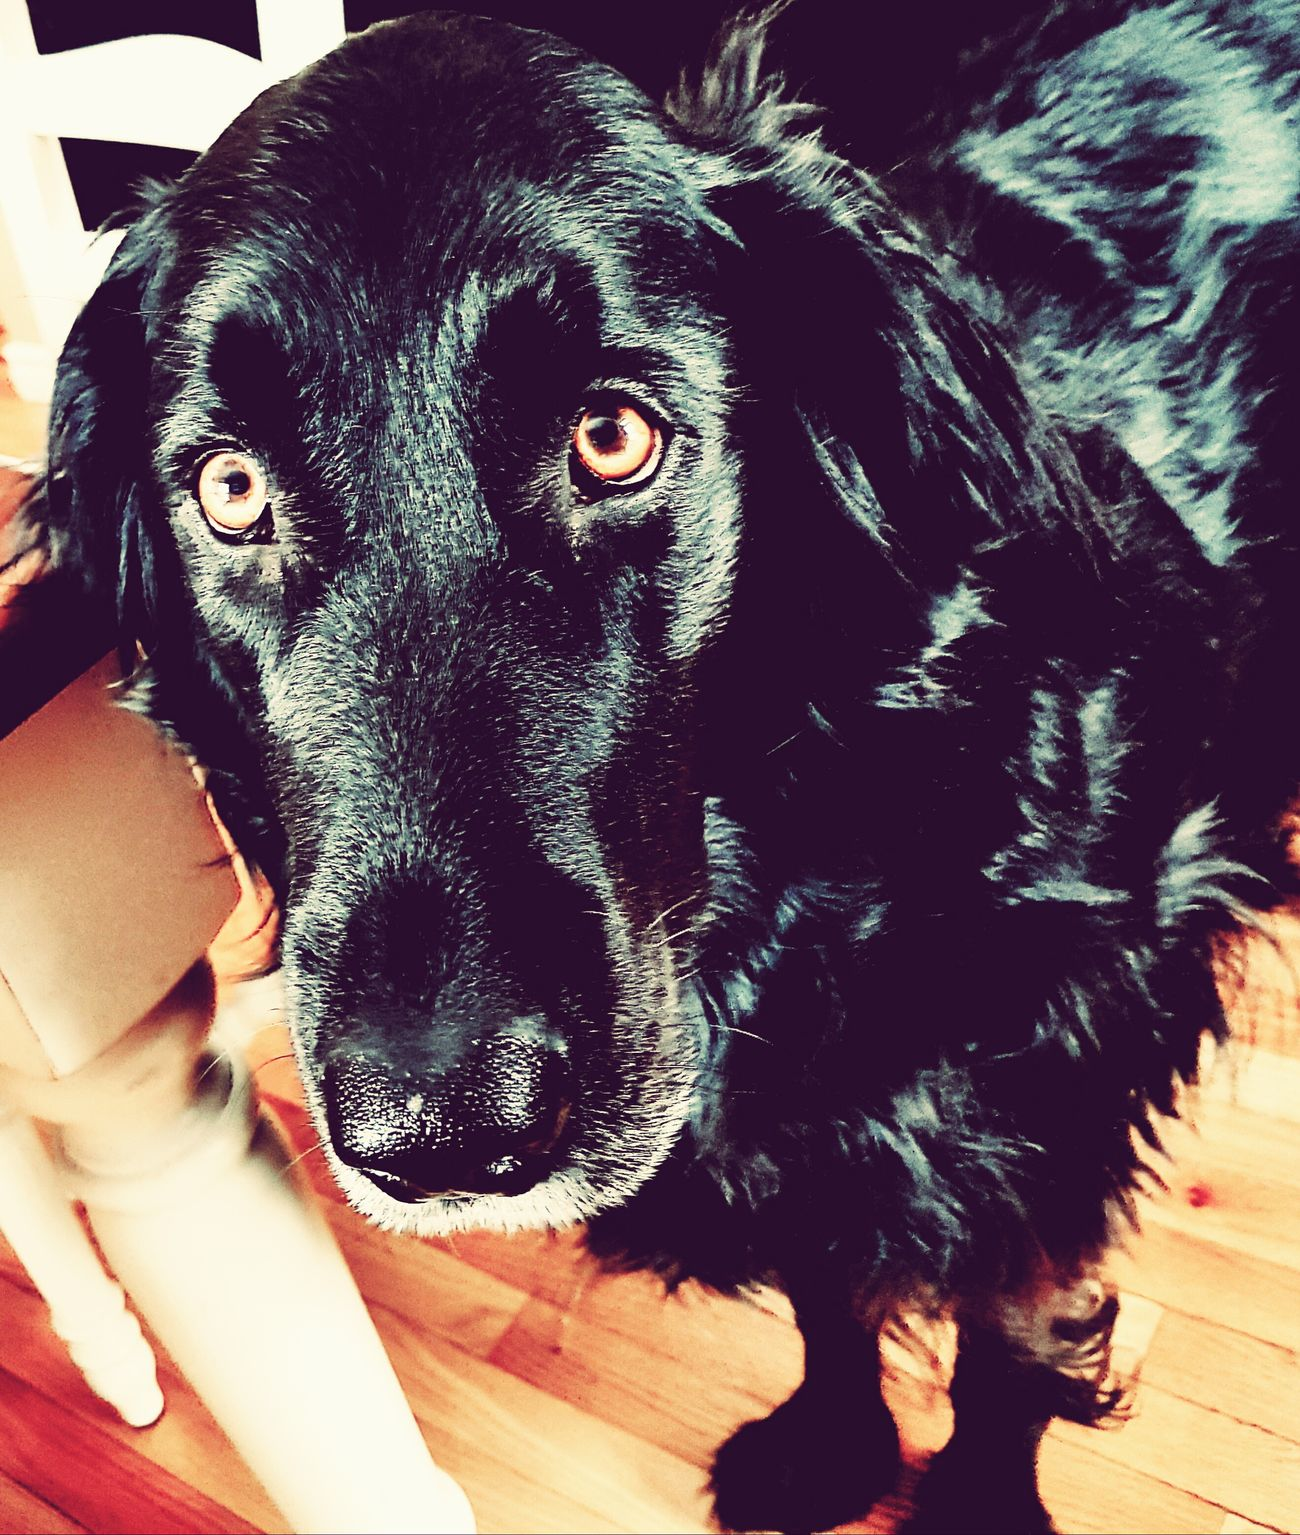 Moses Pets Domestic Animals Dog One Animal Animal Themes Looking At Camera Black Color Mammal Portrait Bonding Black Labrador Close-up Animal Eye Indoors  Day No People Dog❤ Dog Love Dogs Dogs Of EyeEm DogLove Doggy Love